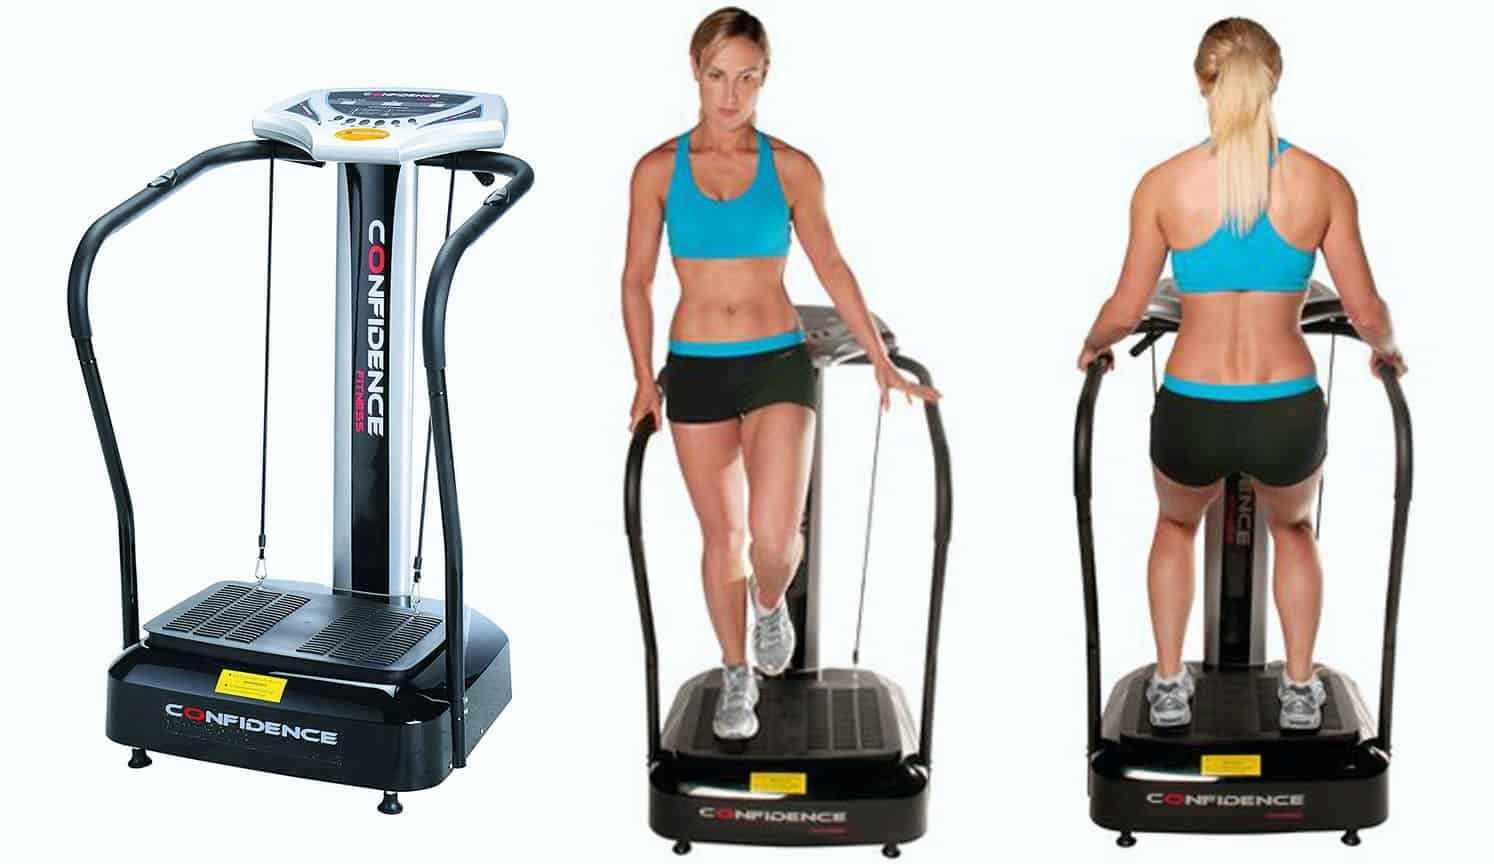 Whole Body Vibration Machine as the first related product of the Best Home Exercise Equipment